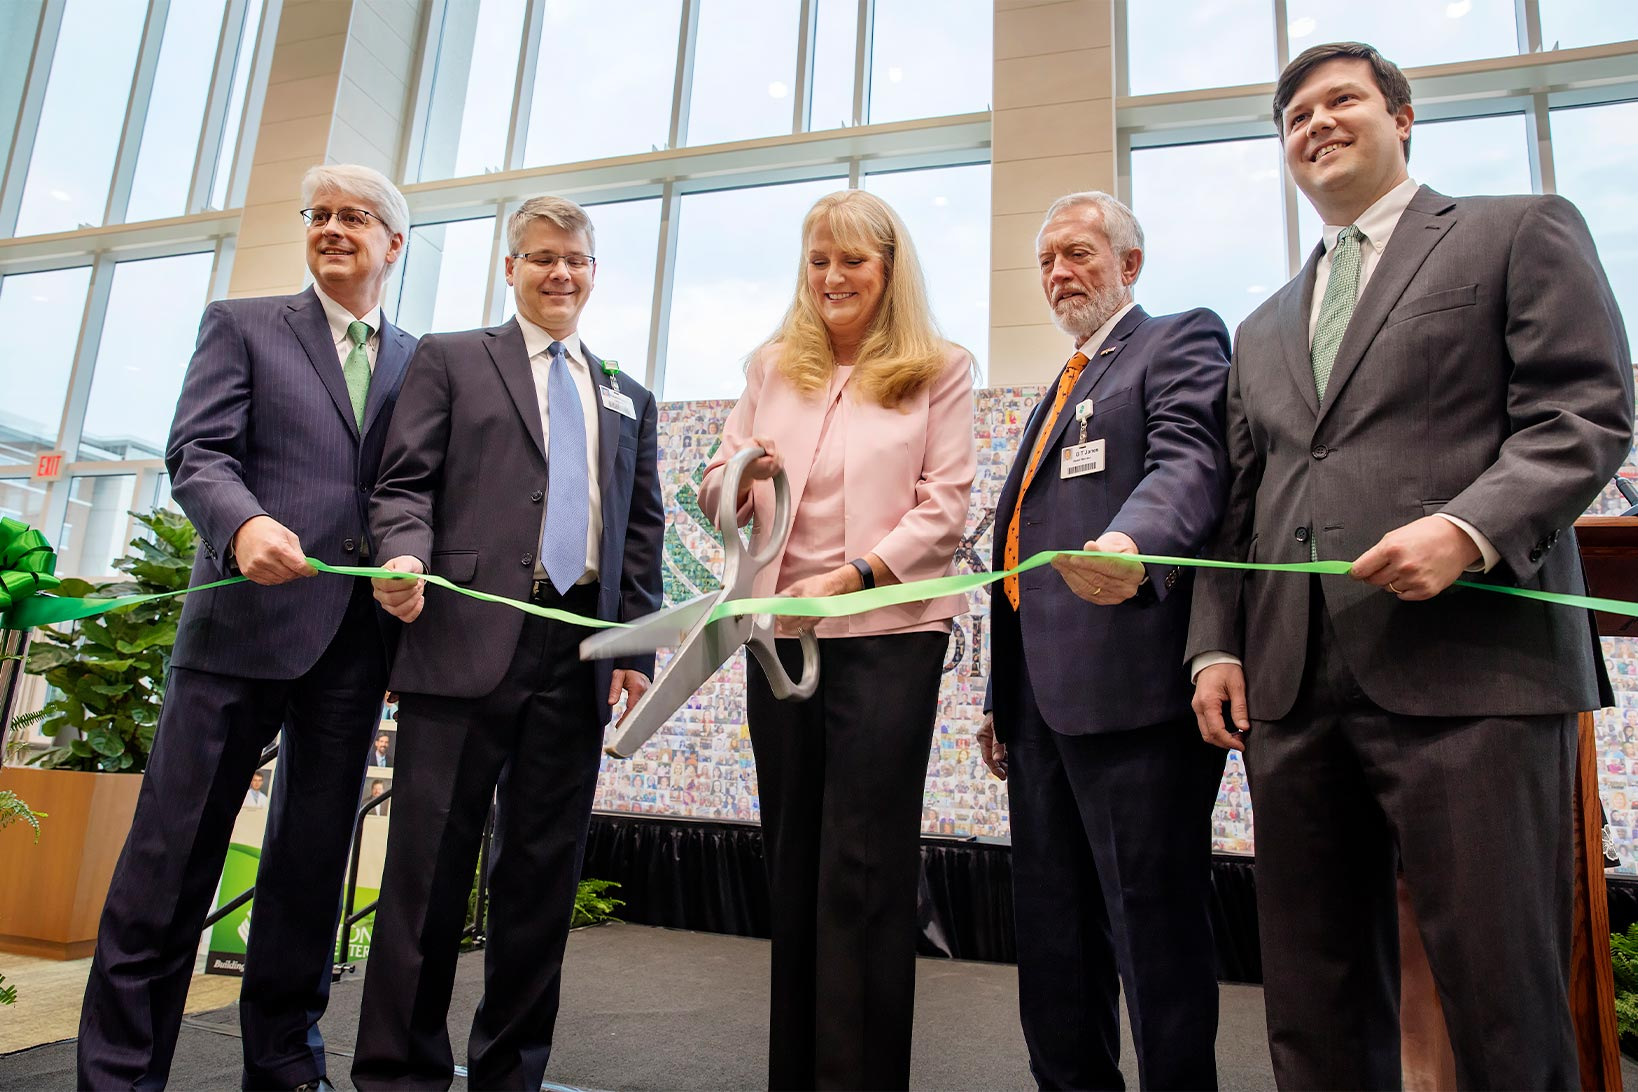 Four people in suits holding a green ribbon and posing for photos while another person in the middle cuts the green ribbon with a large pair of scissors.